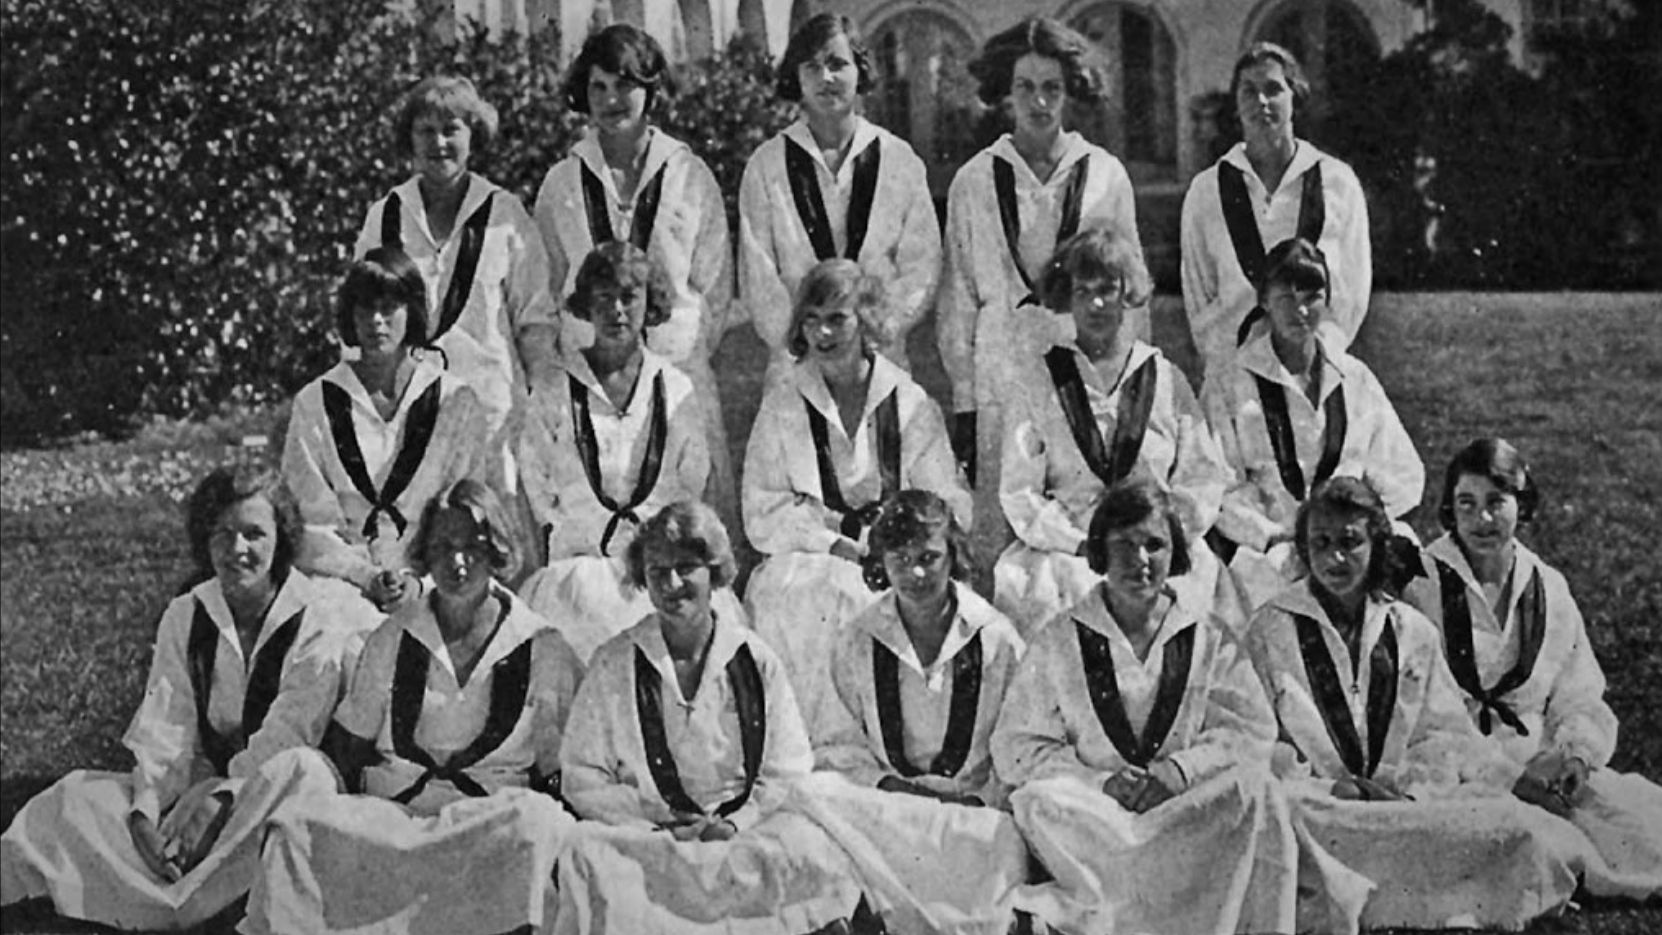 Peg, 15, appears in center of the middle row in this yearbook photo from the Bishop's School in 1923, looking off at something to her right.